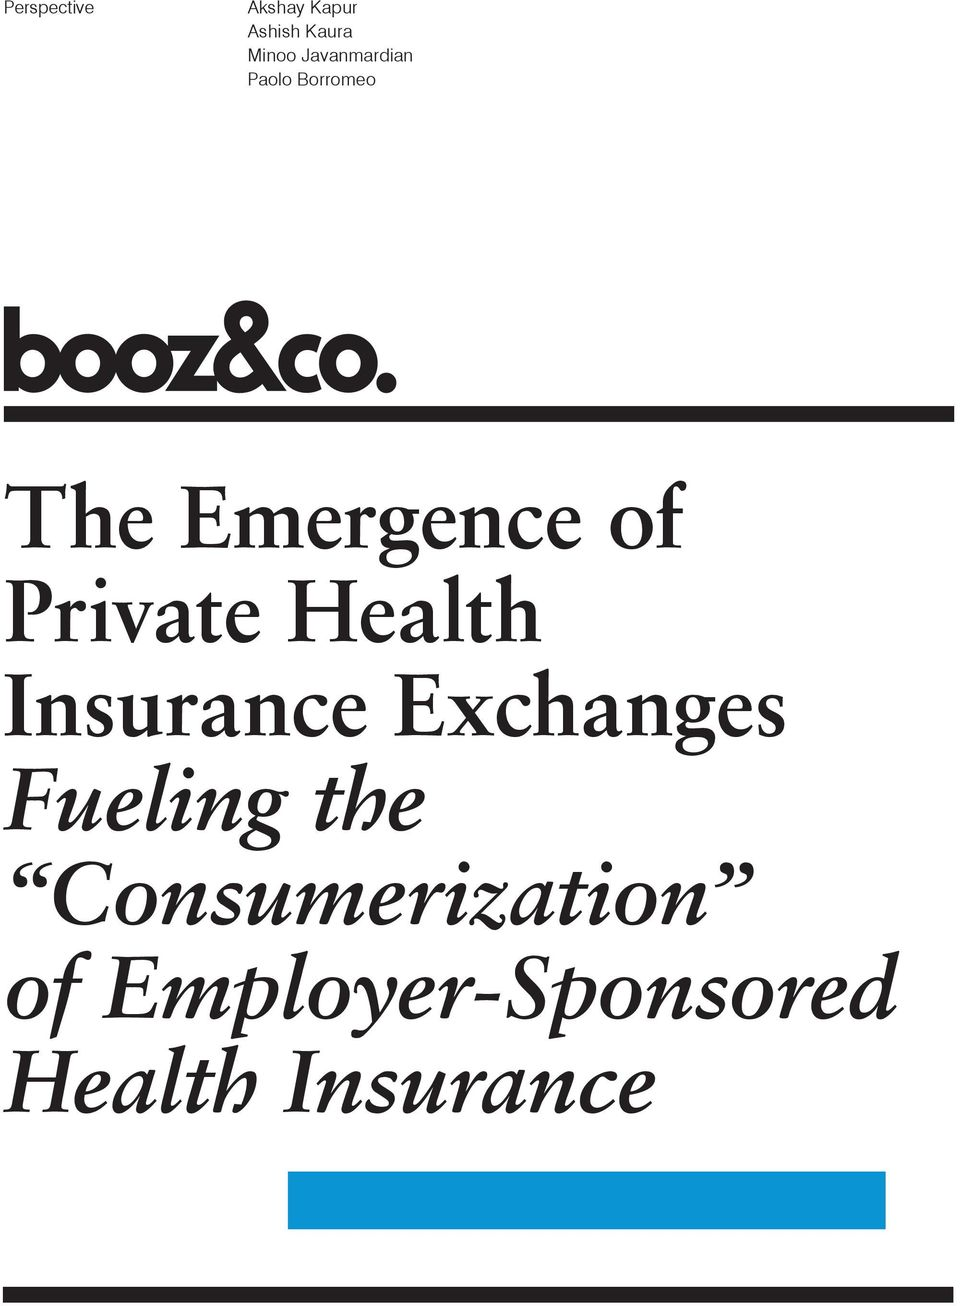 Private Health Insurance Exchanges Fueling the